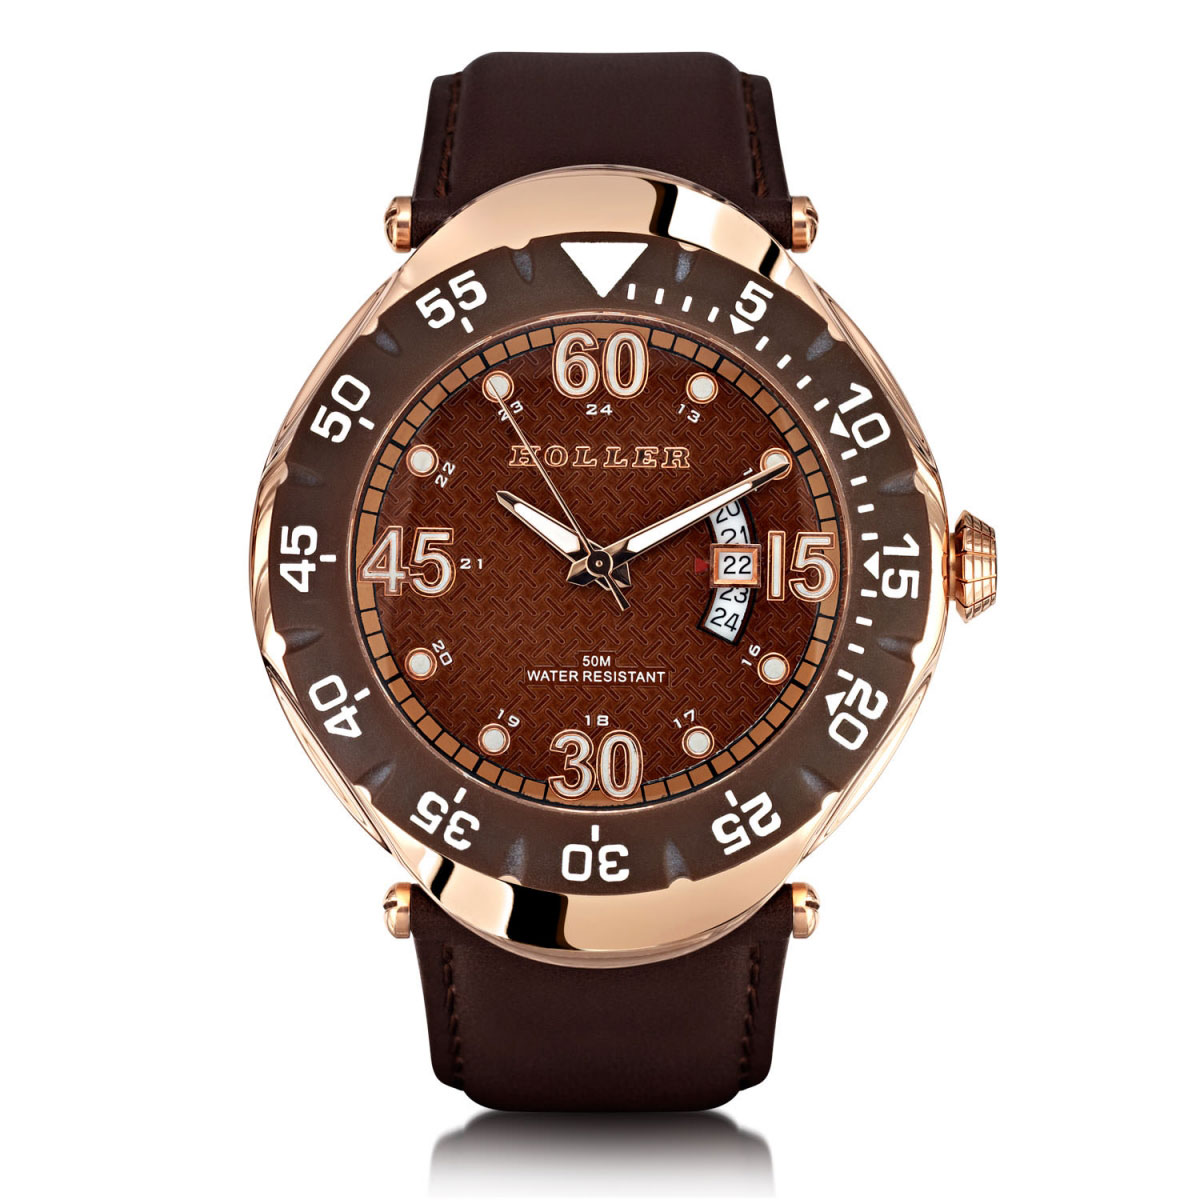 Goldwax Rose Gold Watch